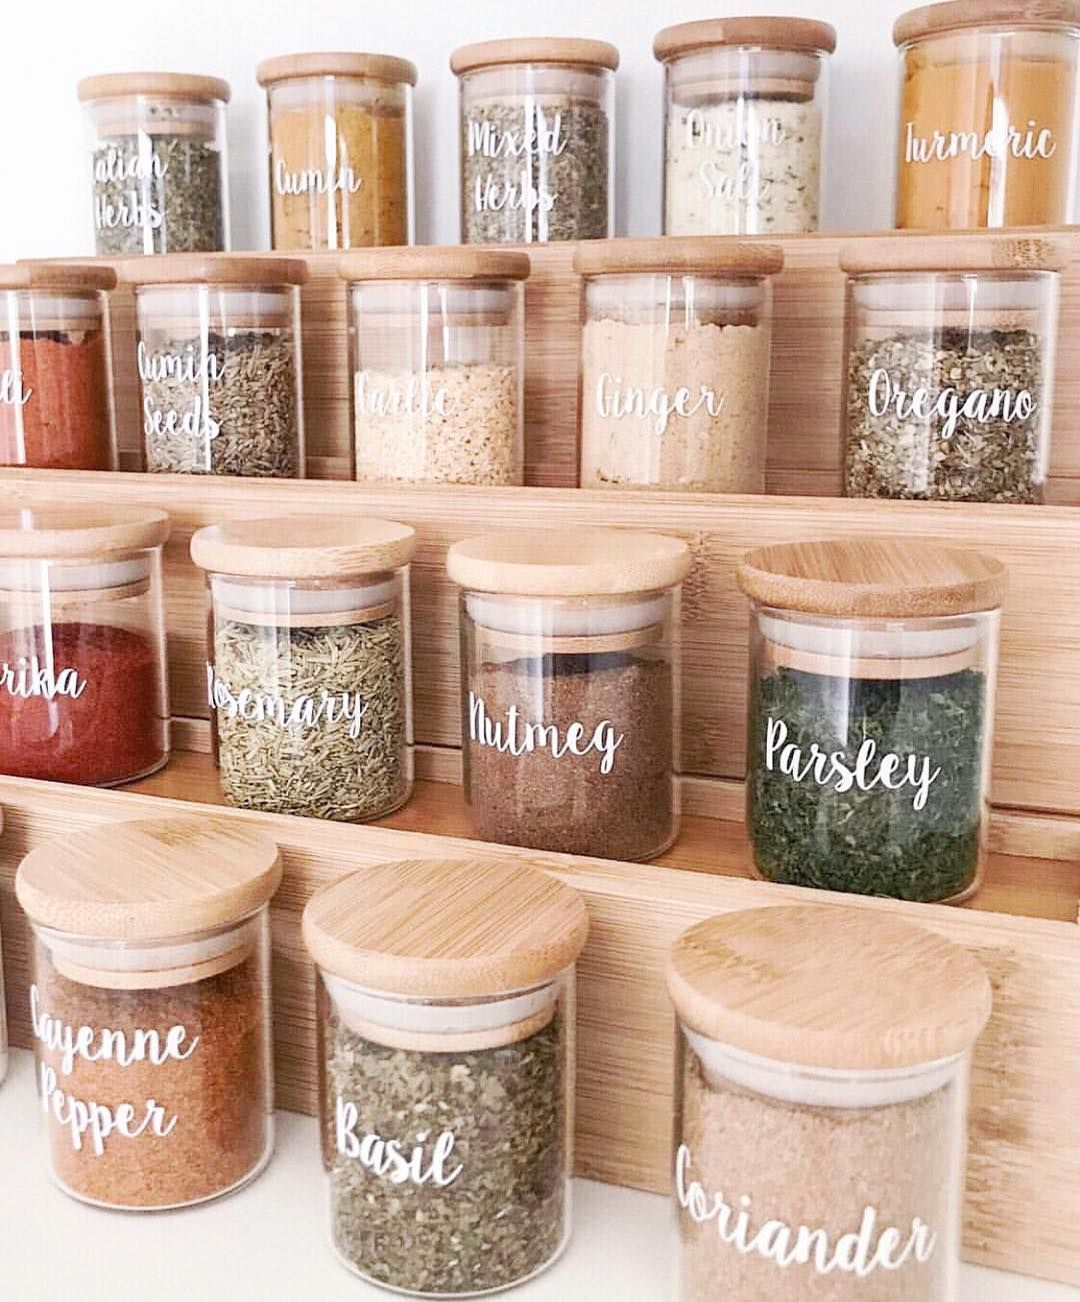 Done Amp Done Home On Instagram These Spice Jars Are Next